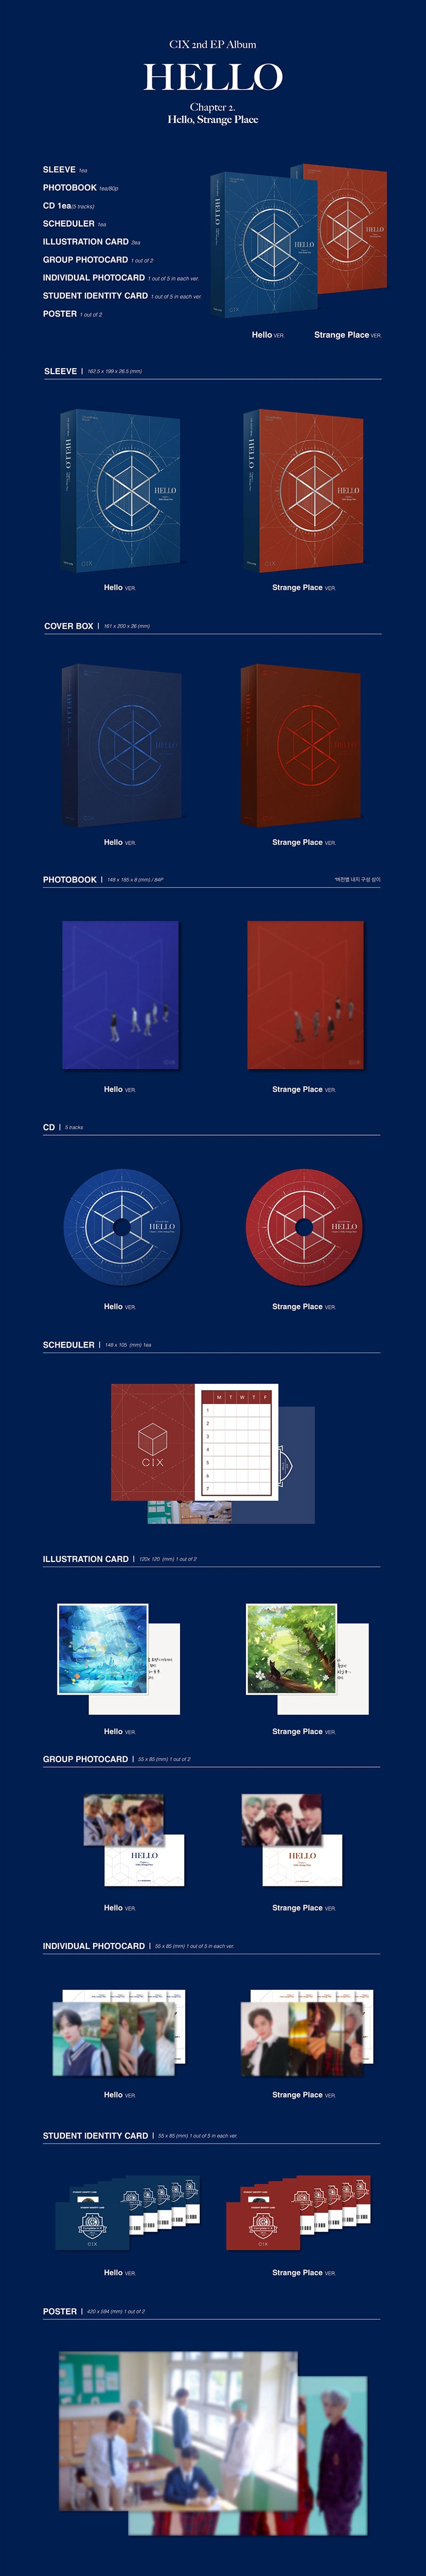 CIX - 2nd EP ALBUM [HELLO] Chapter 2. Hello, Strange Place